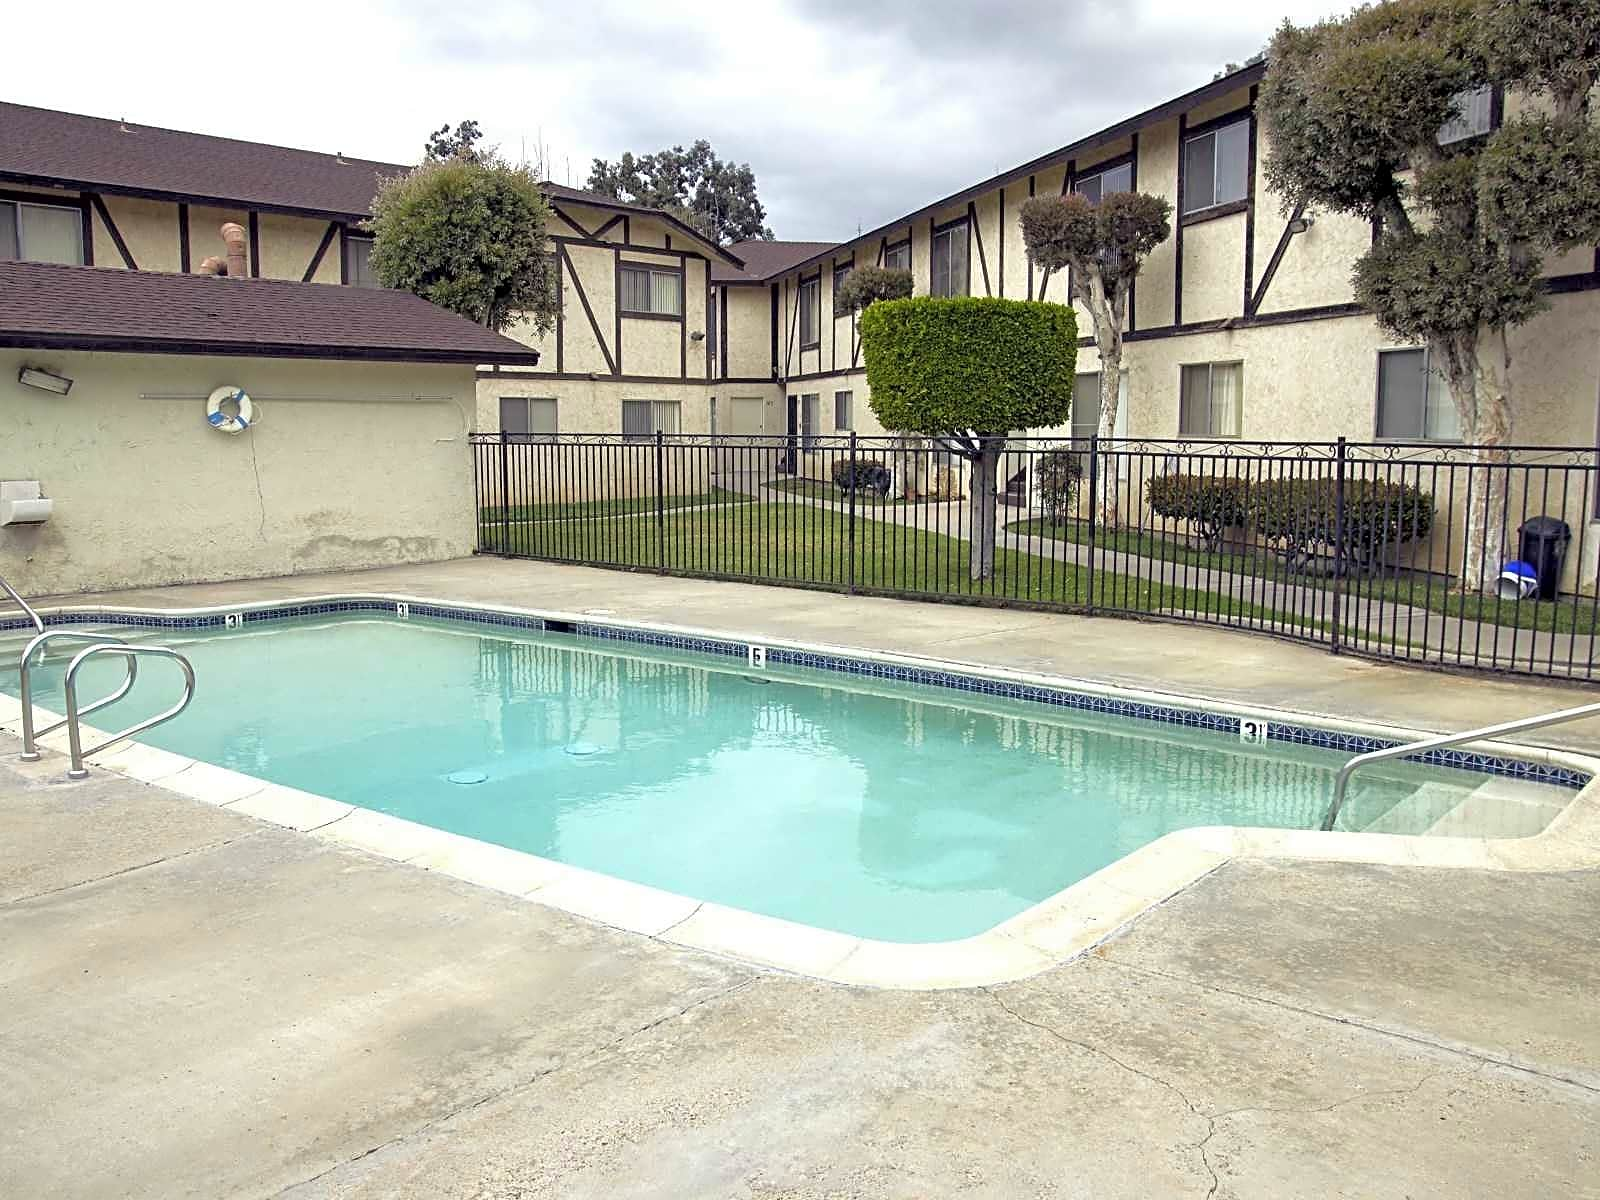 Photo: San Diego Apartment for Rent - $1075.00 / month; 2 Bd & 1 Ba